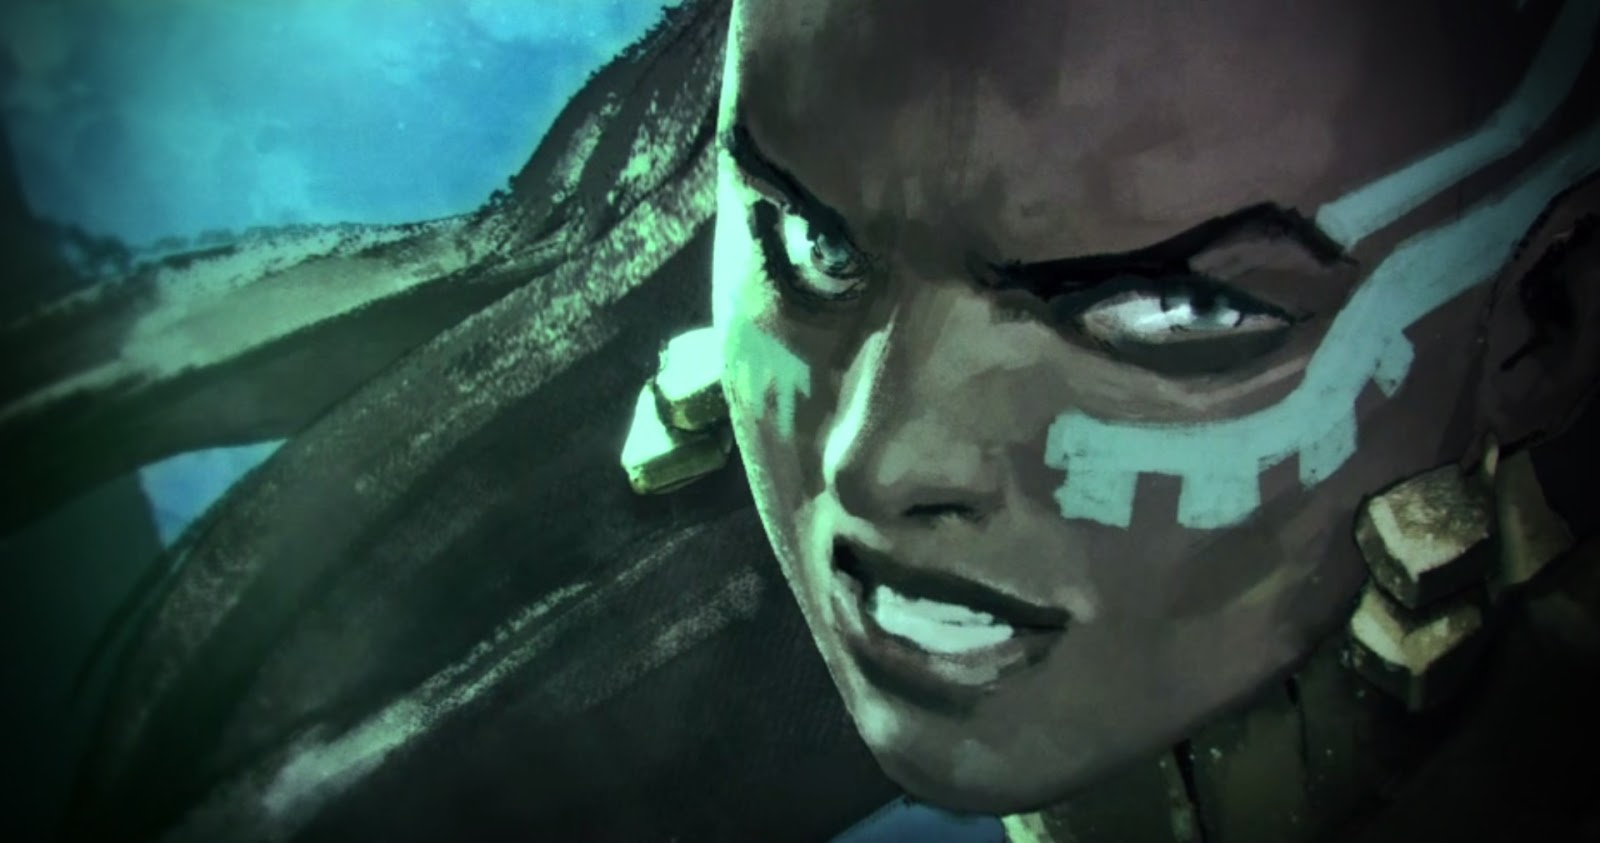 league of legends new champion illaoi now has her own game